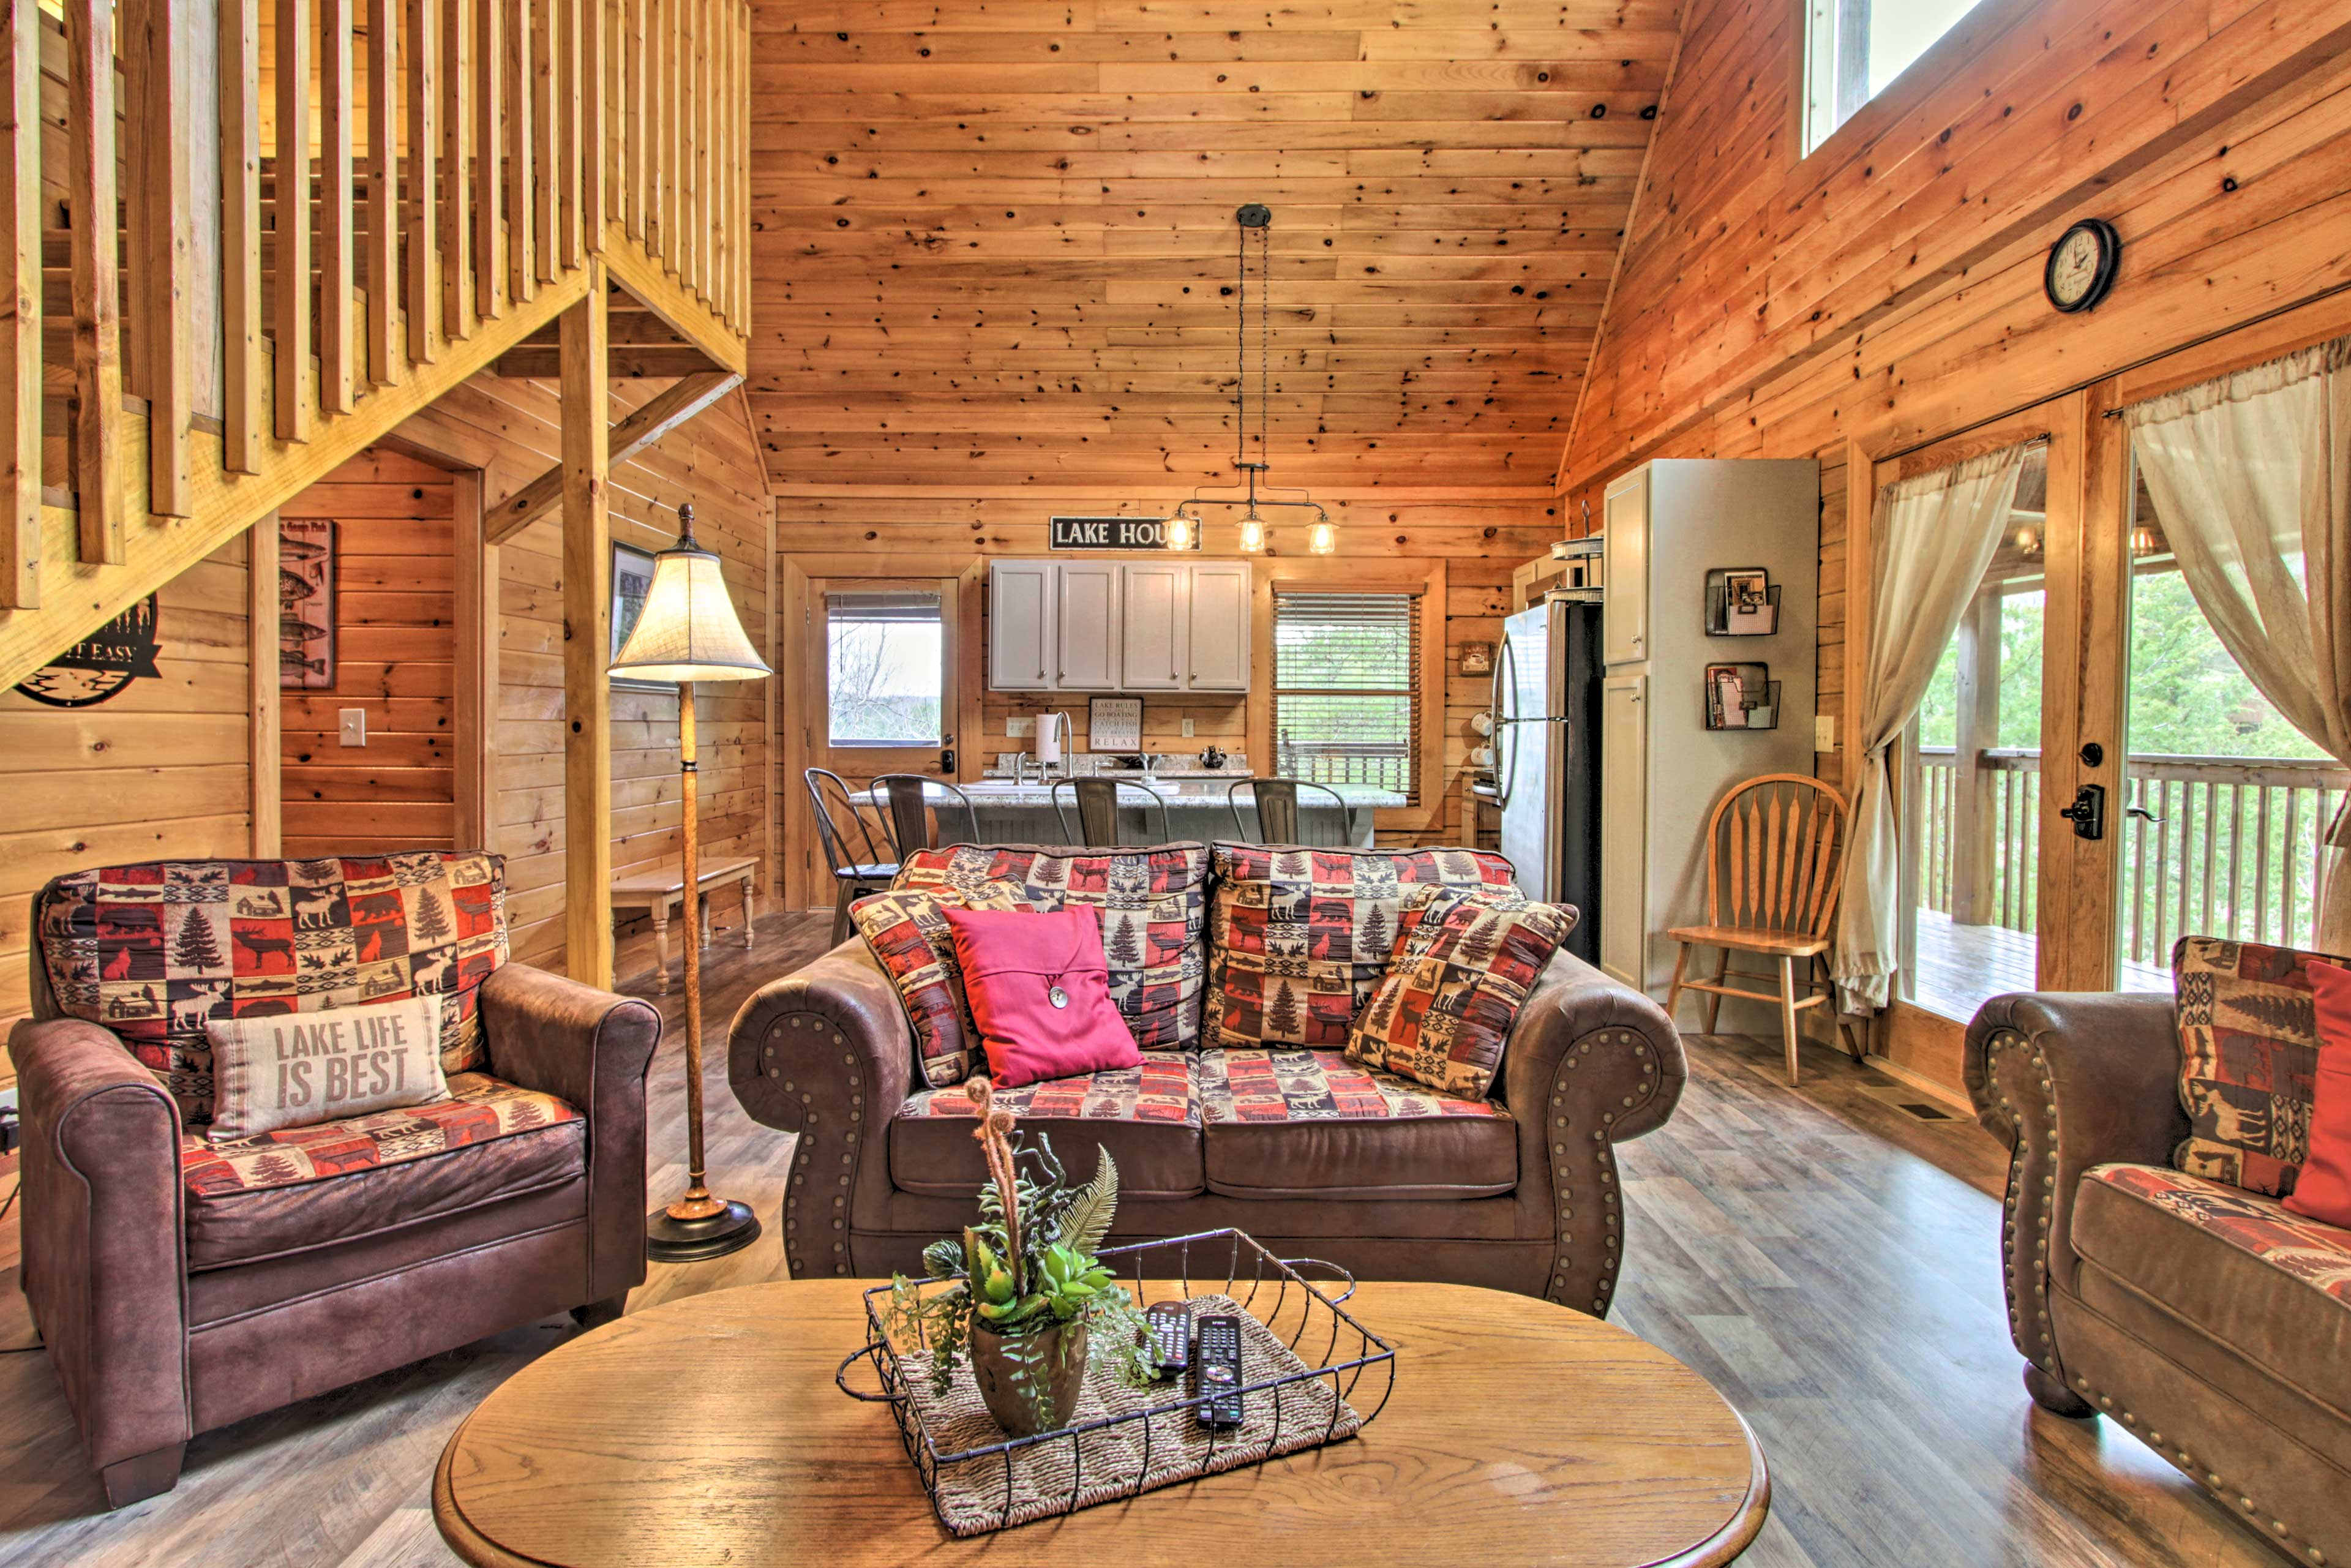 This cabin features tall ceilings and an open layout.